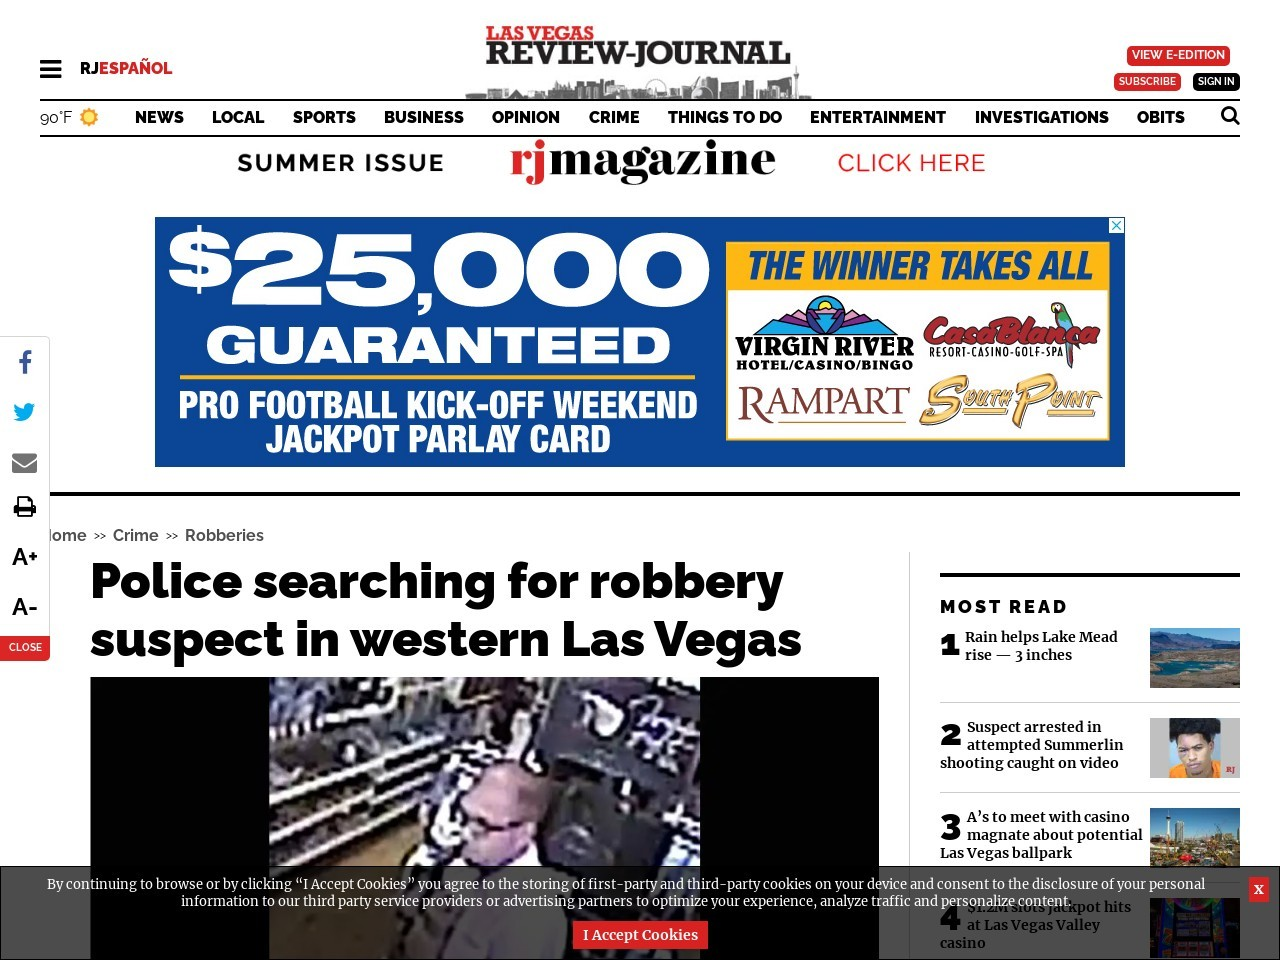 Police searching for robbery suspect in western Las Vegas